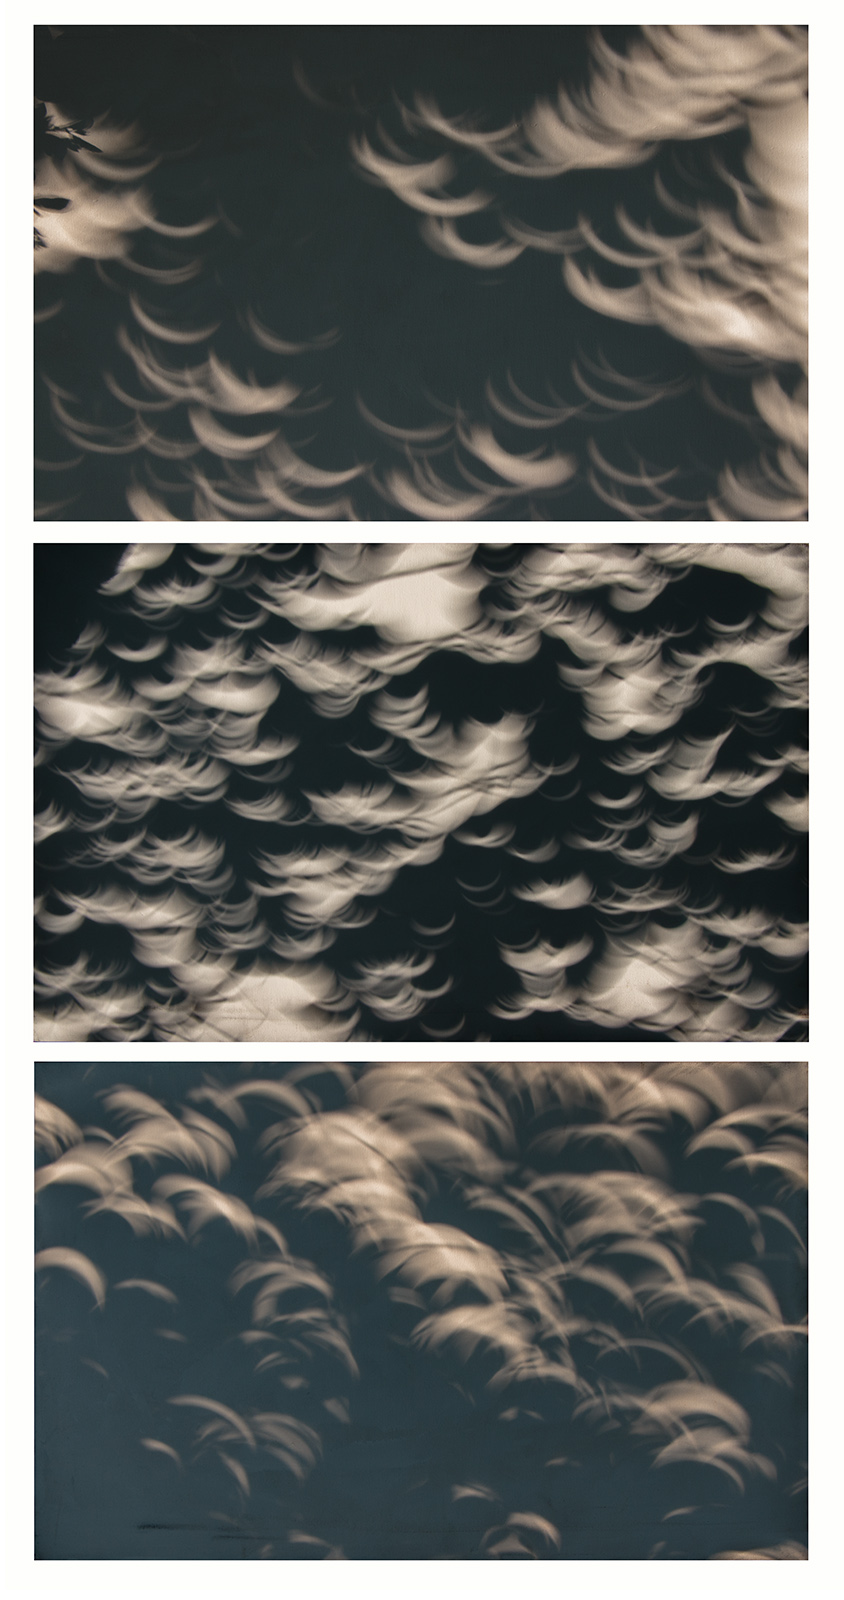 solar eclipse shadows on canvas, triptych no. 2, 2017